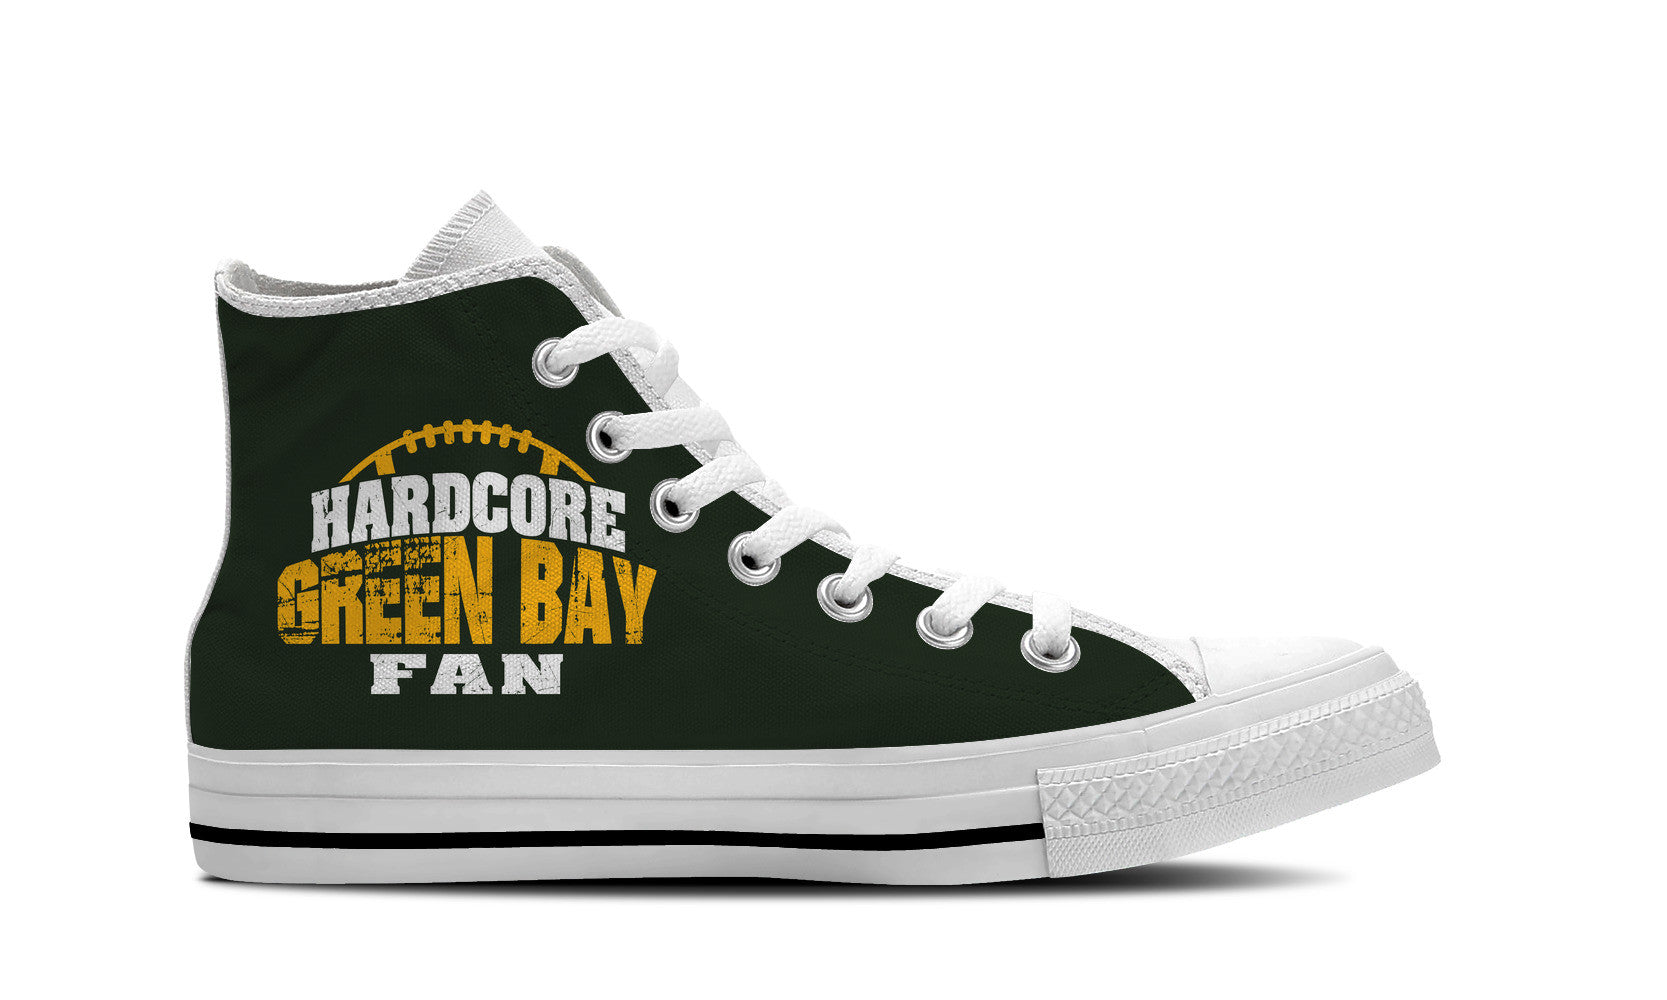 Hardcore Green Bay Football Fan Mens High Top Shoe